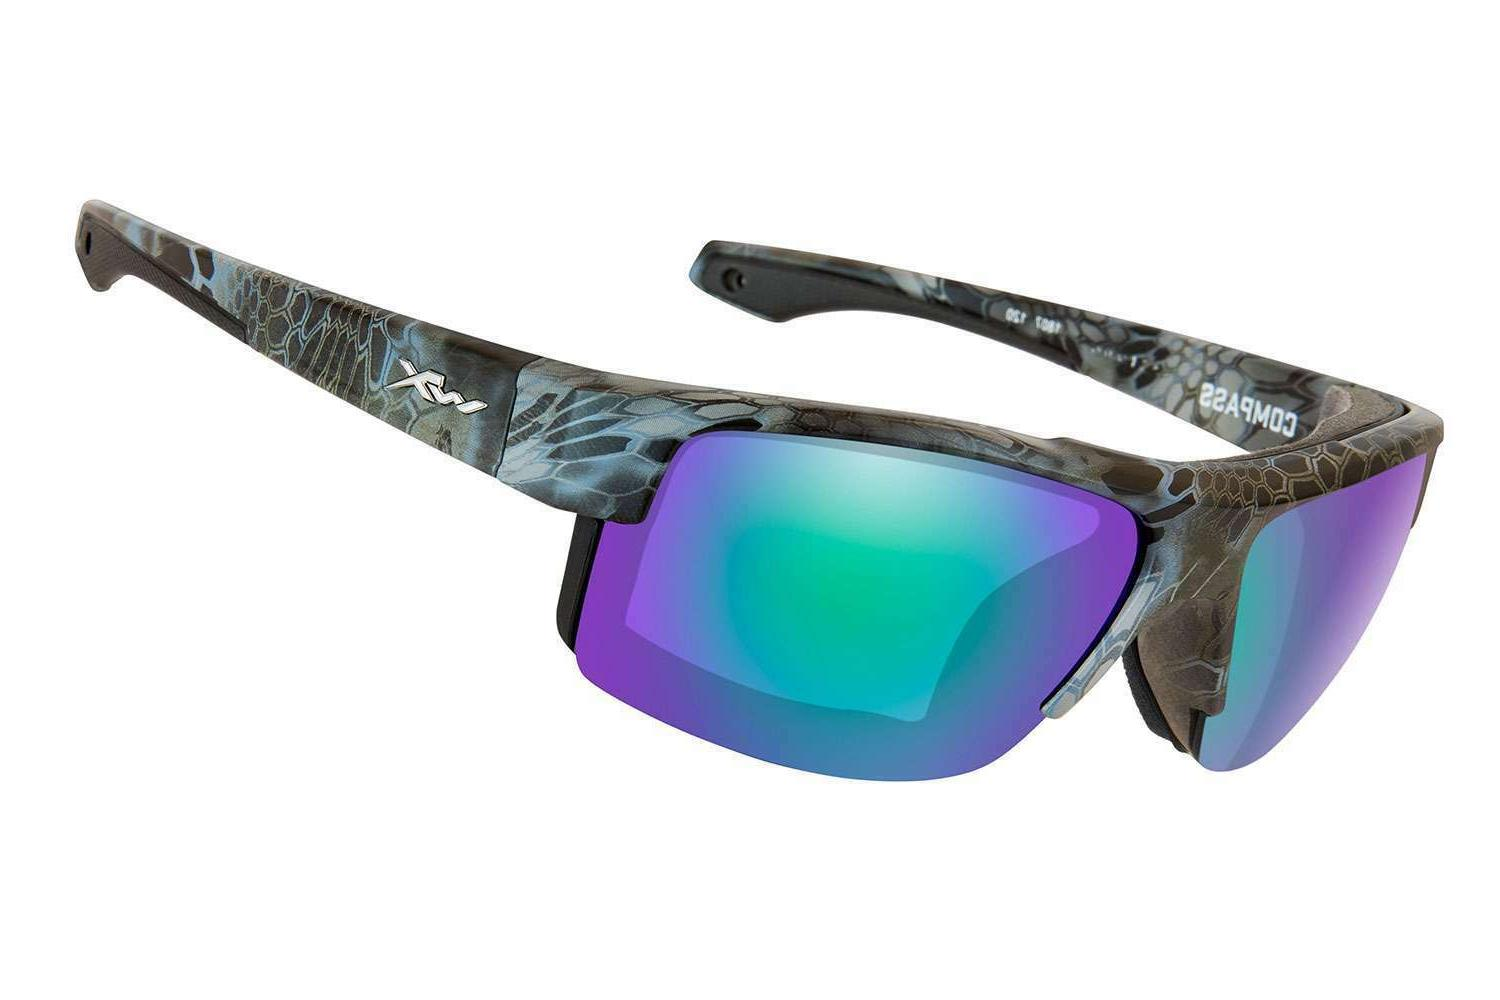 NEW DVX by Wiley X Men's White Axon Shatterproof 100% UV Pol